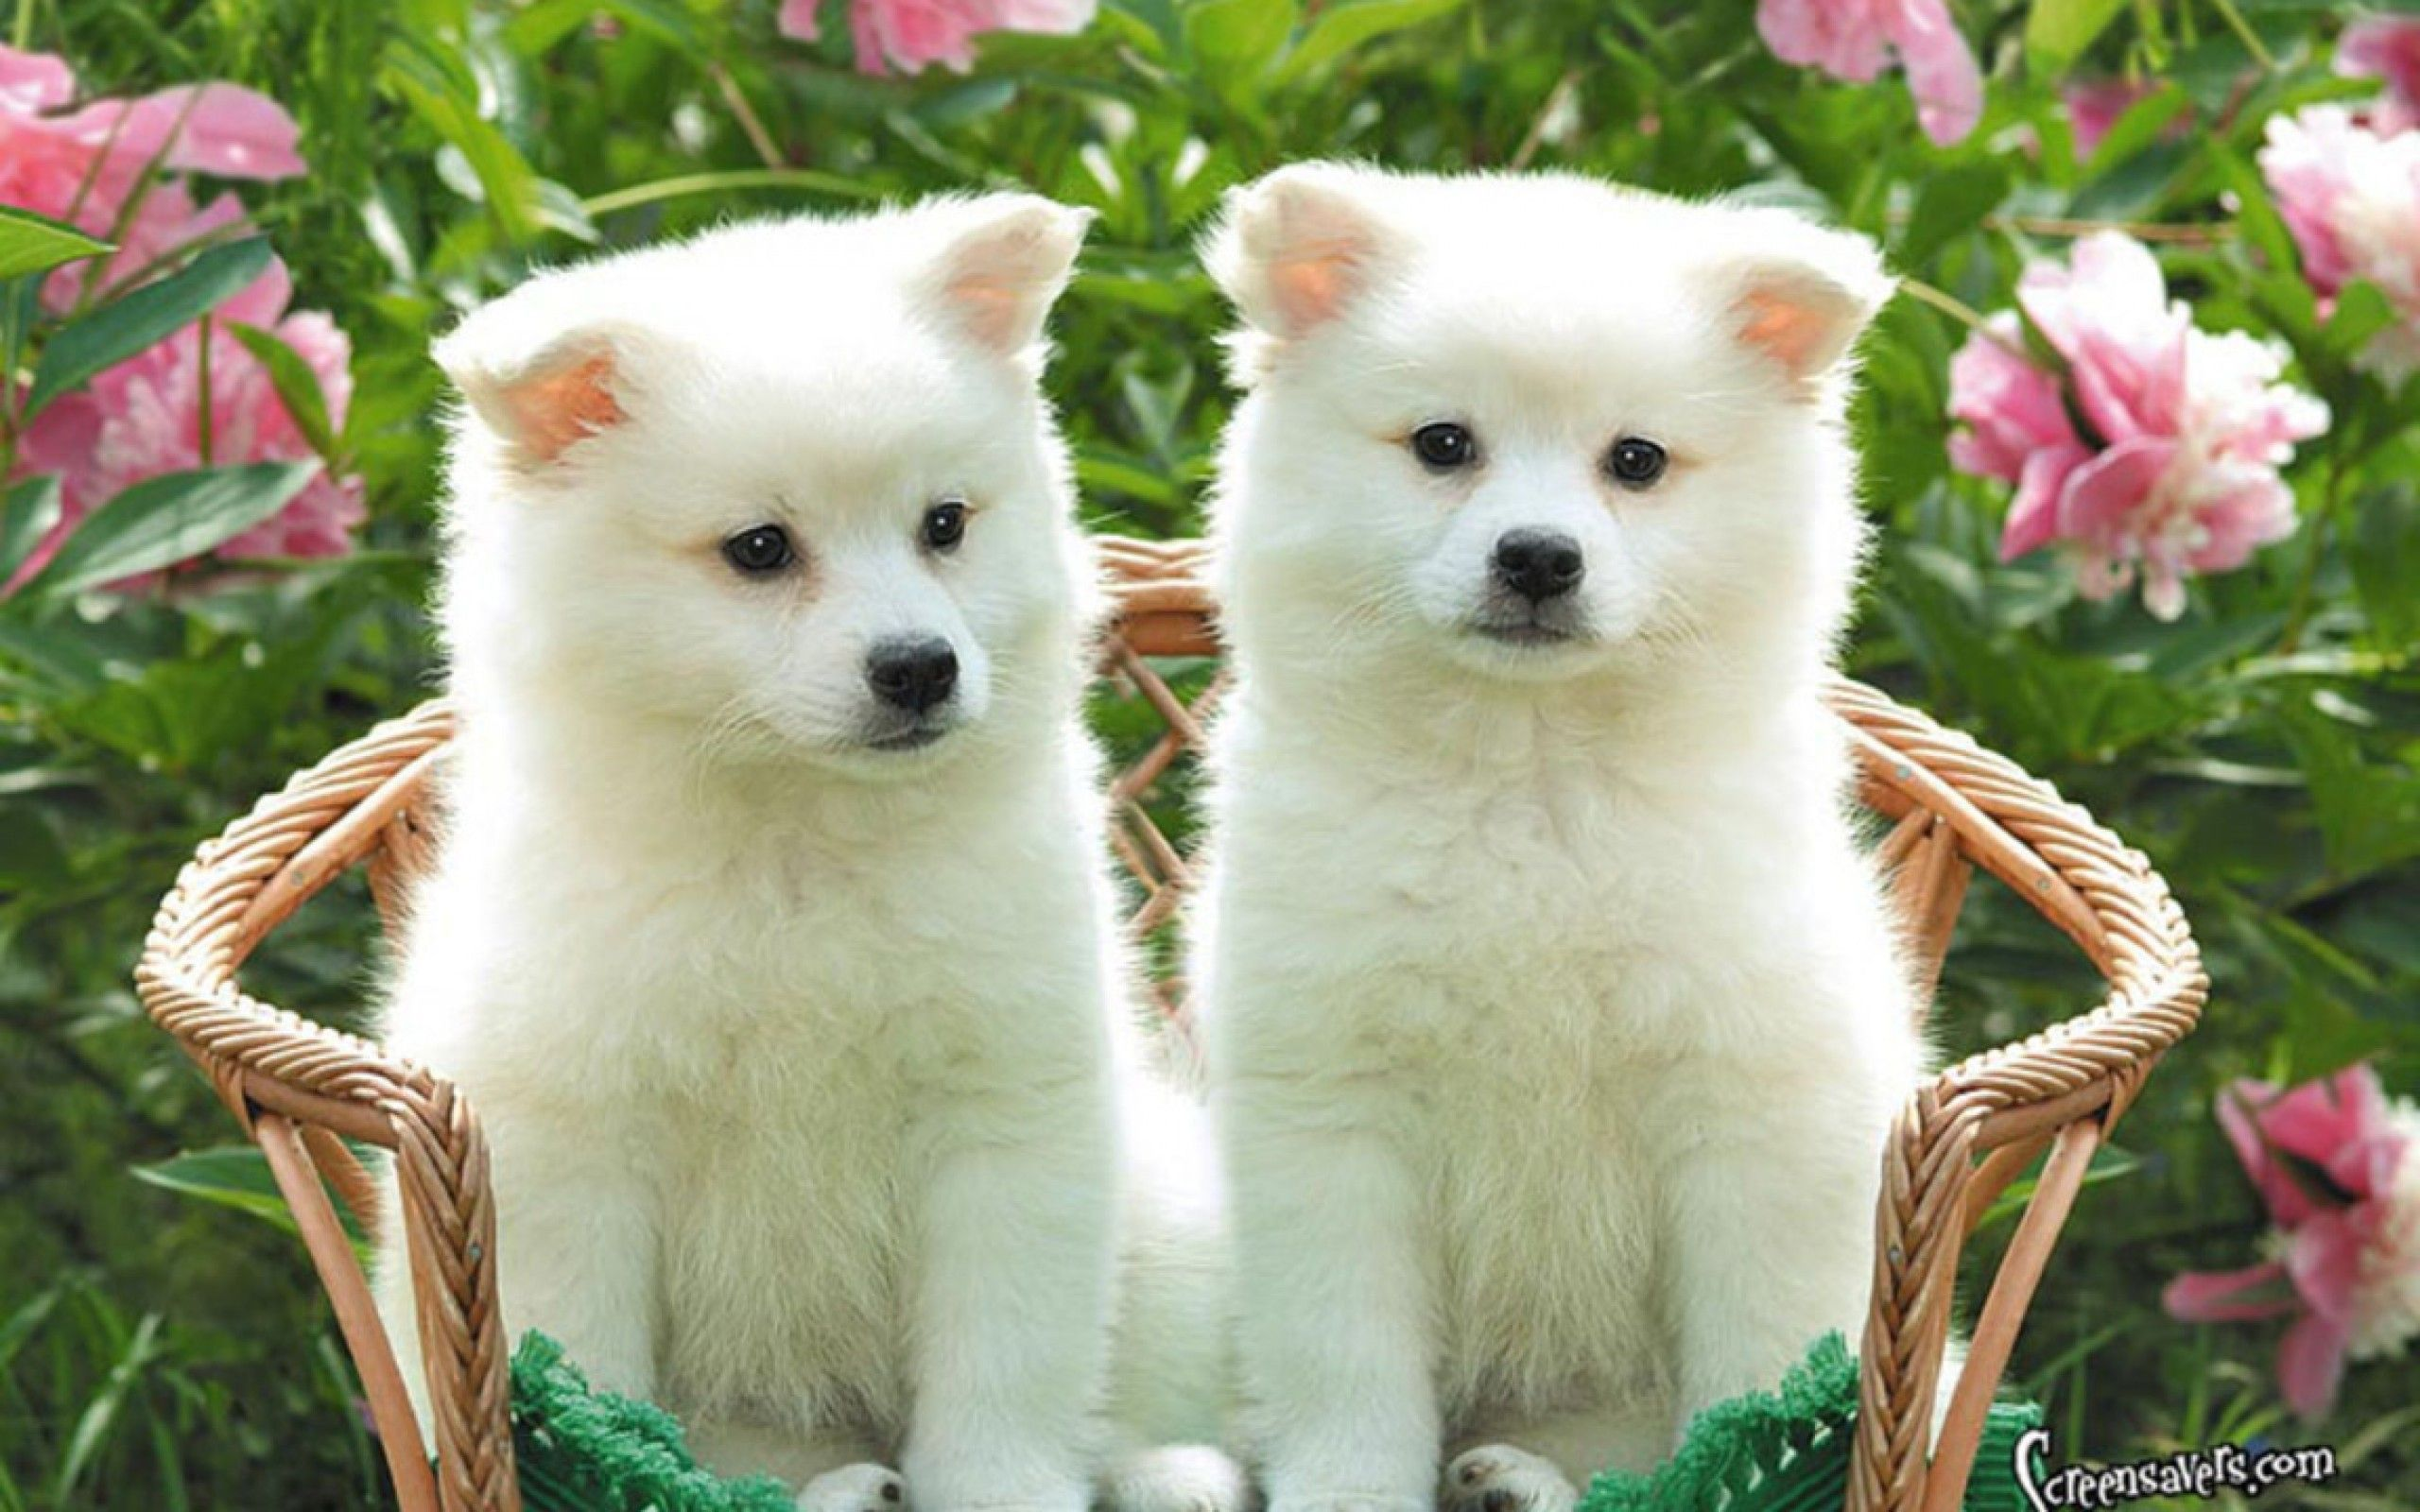 Cute Puppy Pictures Wallpapers Wallpaper Cave Pet Dogs Images Cute Puppy Photos Cute Puppy Wallpaper